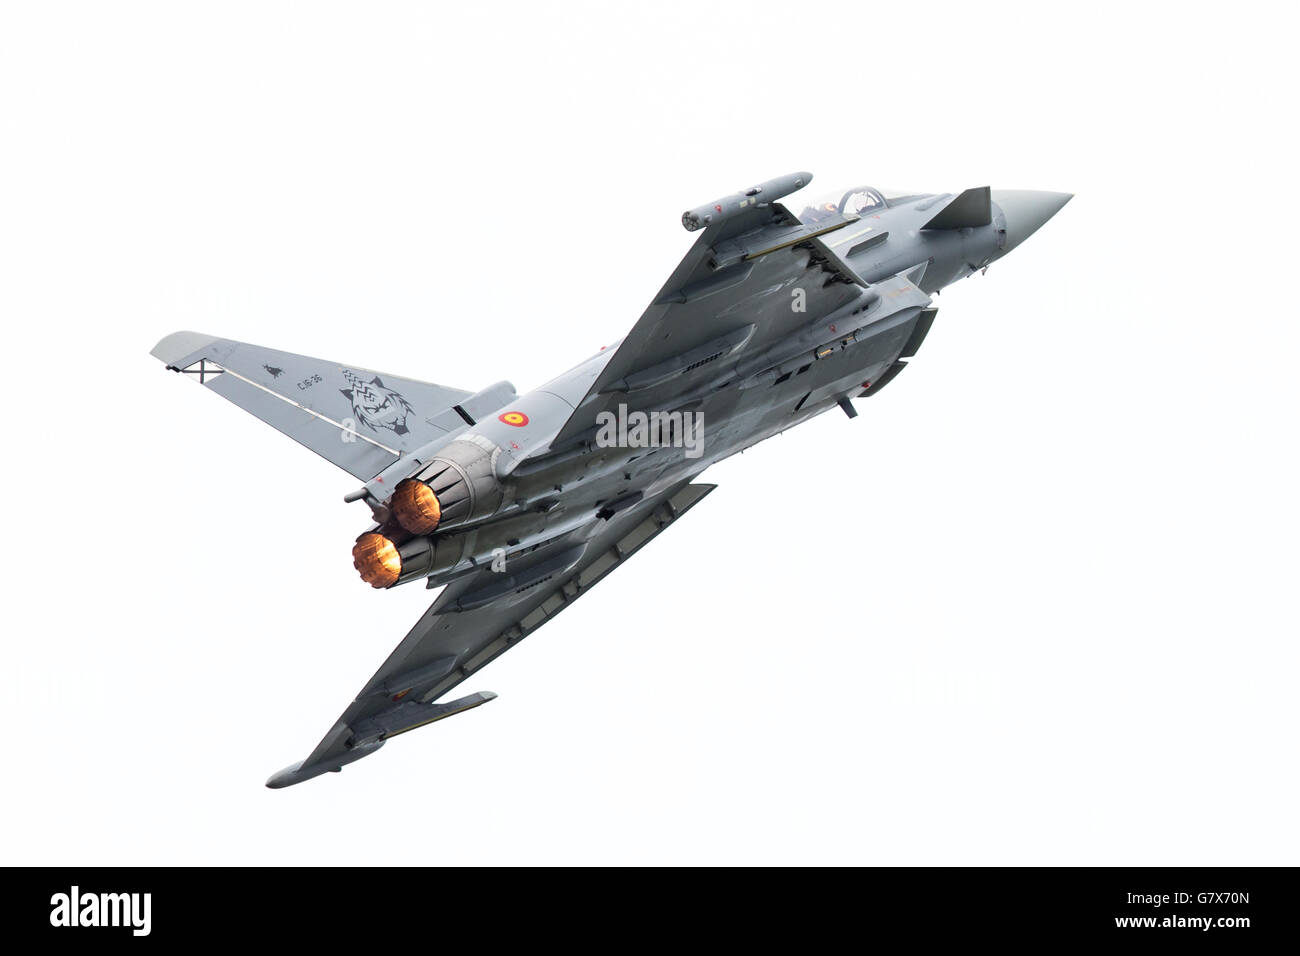 LEEUWARDEN, THE NETHERLANDS - JUNE 10: Spanish Air Force Eurofighter Typhoon flying during the Dutch Air Force Open Stock Photo